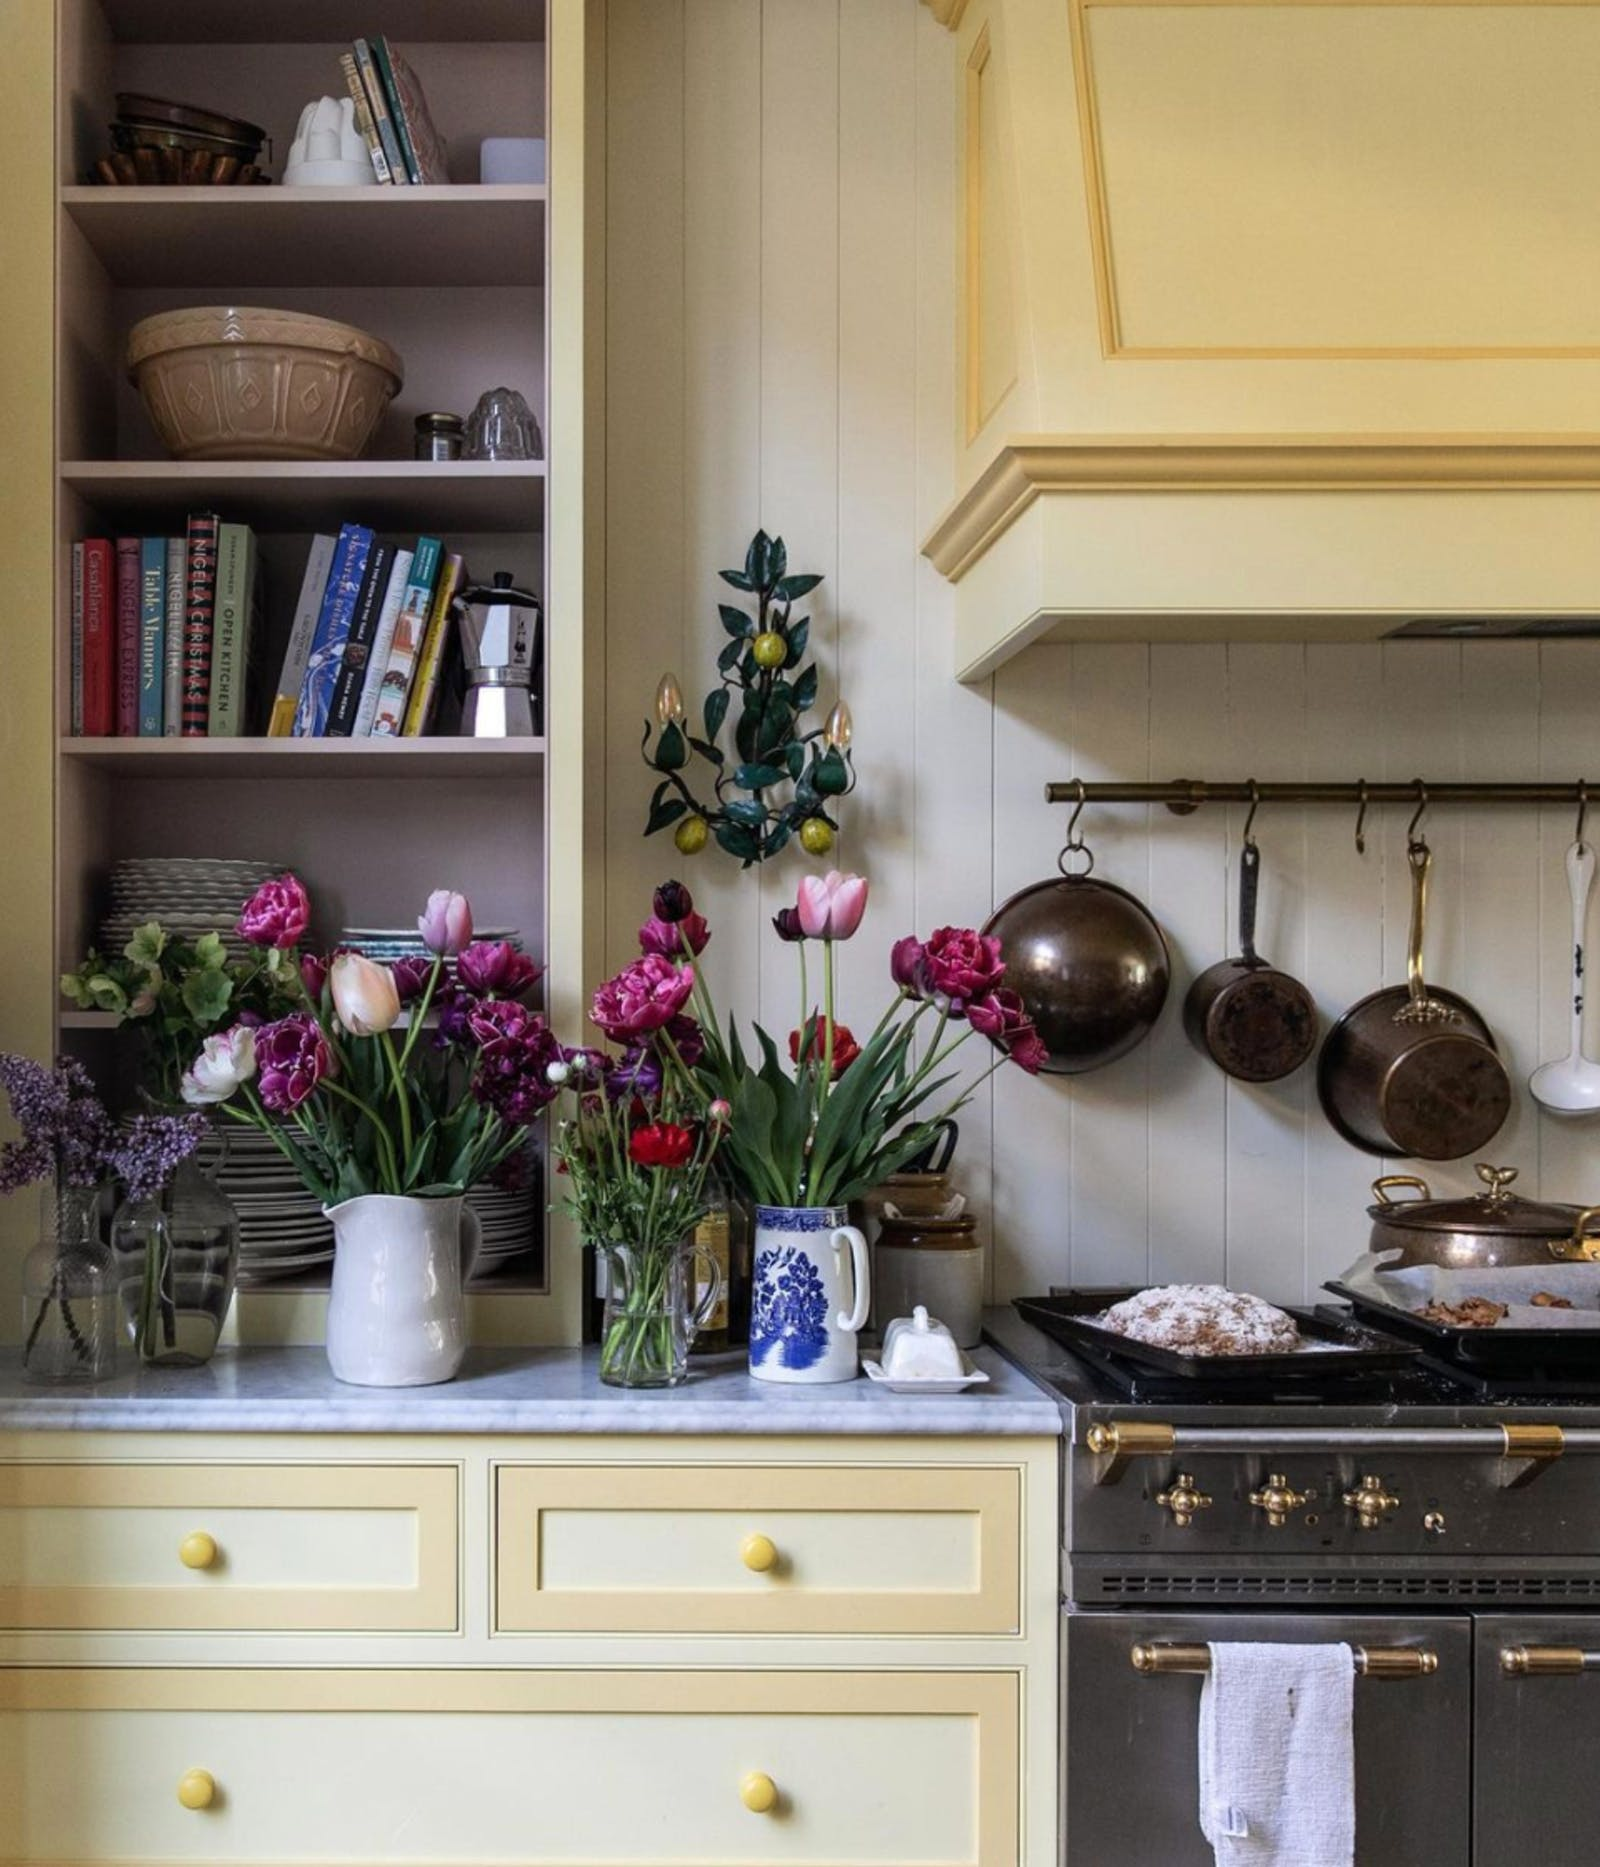 Kitchen with yellow cabinets and pink flowers